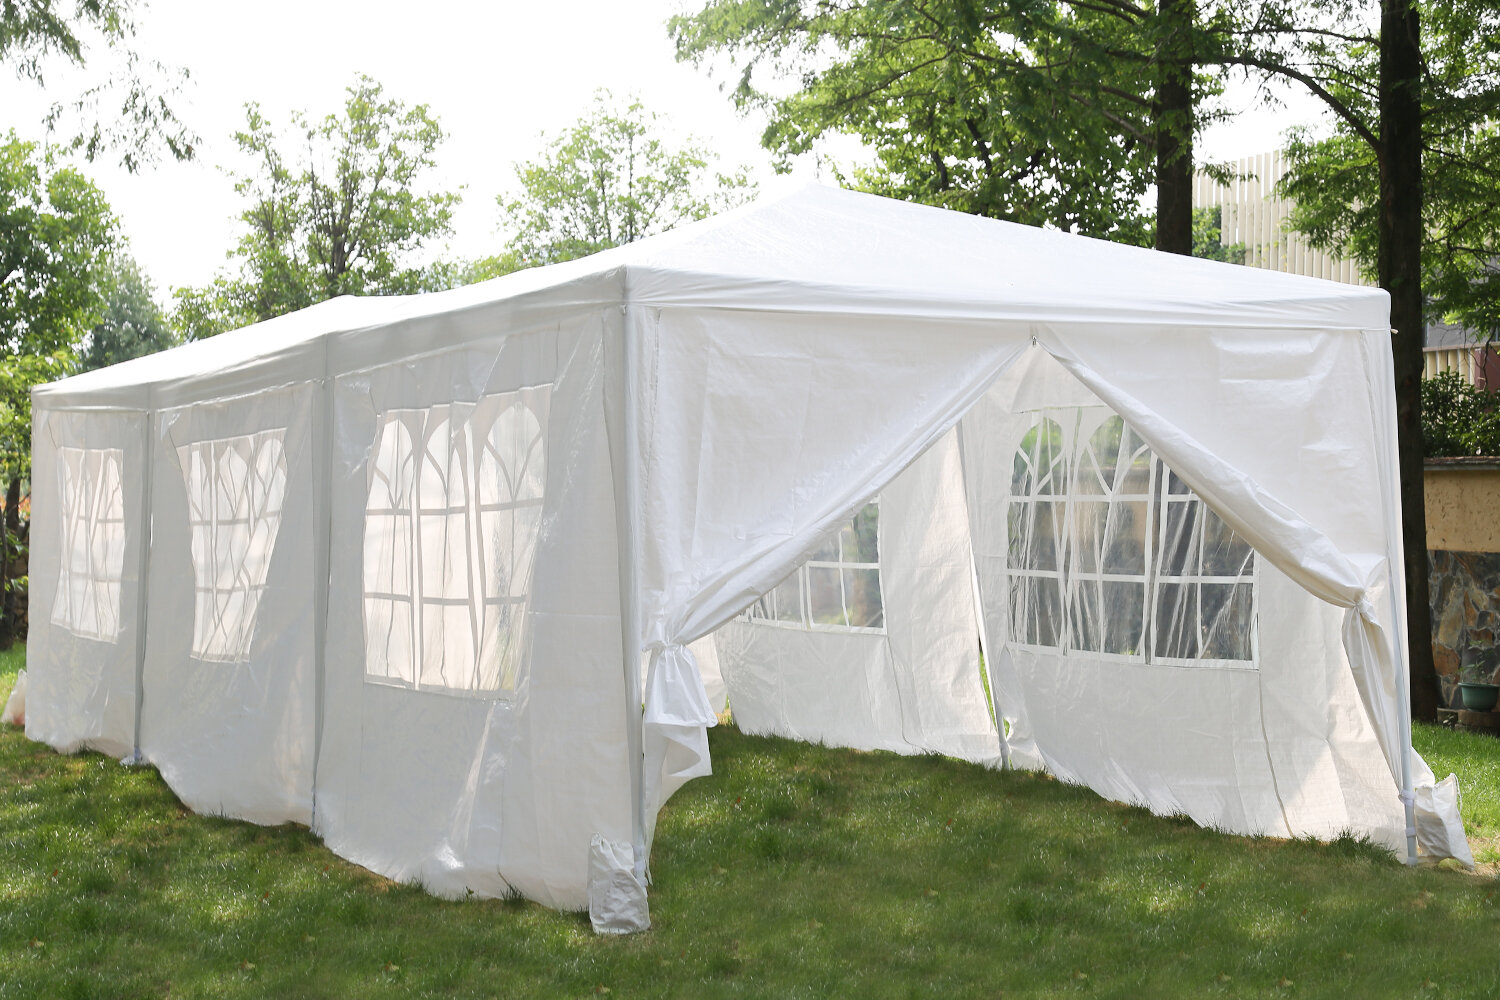 Fdw 10 X30 White Outdoor Gazebo Canopy Tent Canopy Wedding Party Tent Waterproof Camping Gazebo Bbq Shelter Pavilion 8 Removable Walls 8 Wayfair Ca